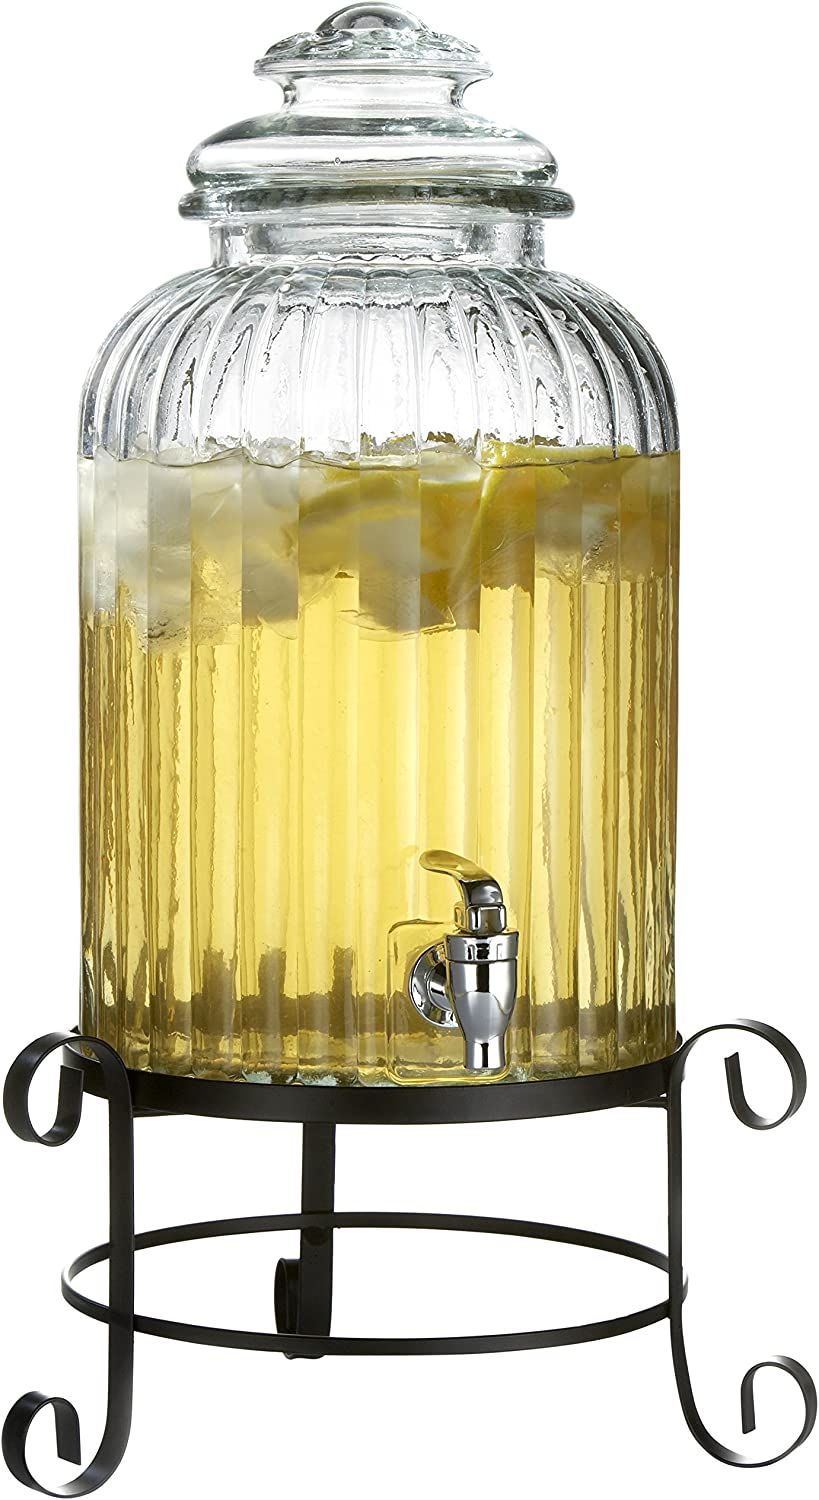 Style Setter 210919-RB 3 Gallon Glass Beverage Drink Dispenser with Metal Stand & Glass Lid, Springfield, Clear